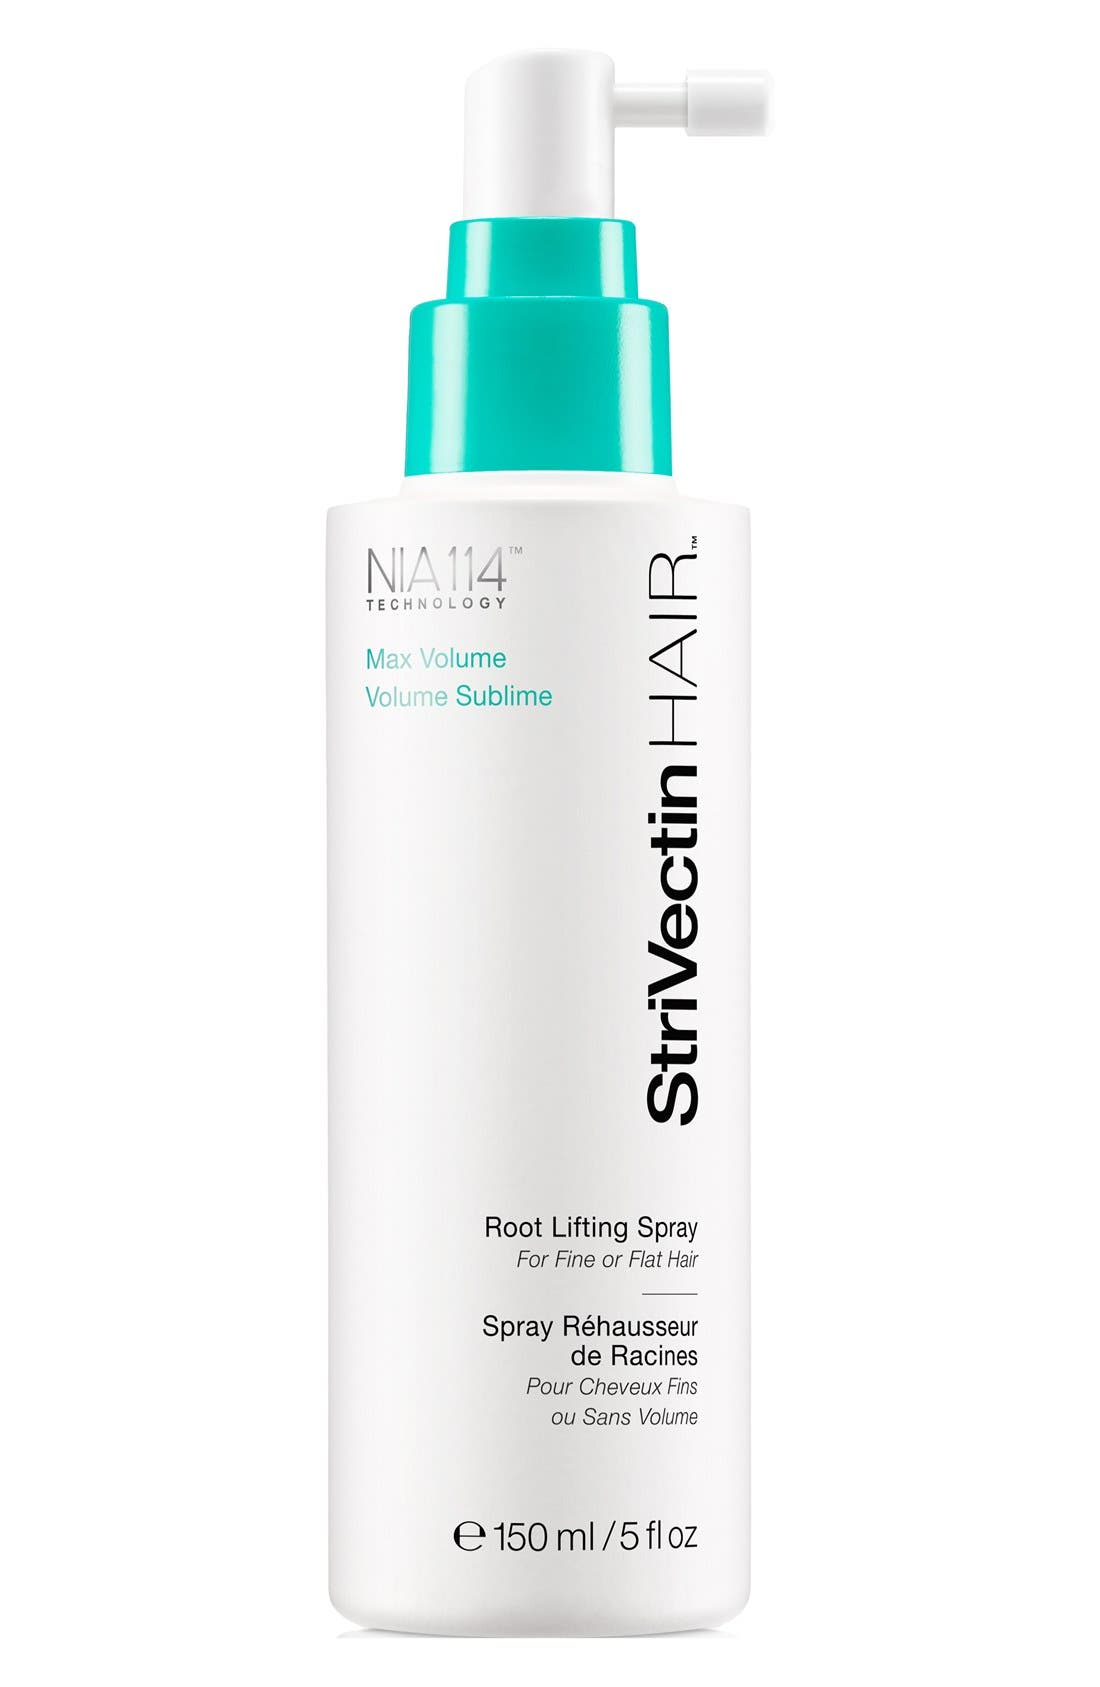 StriVectinHAIR<sup>™</sup> 'Max Volume' Root Lifting Spray for Flat or Fine Hair,                             Main thumbnail 1, color,                             000